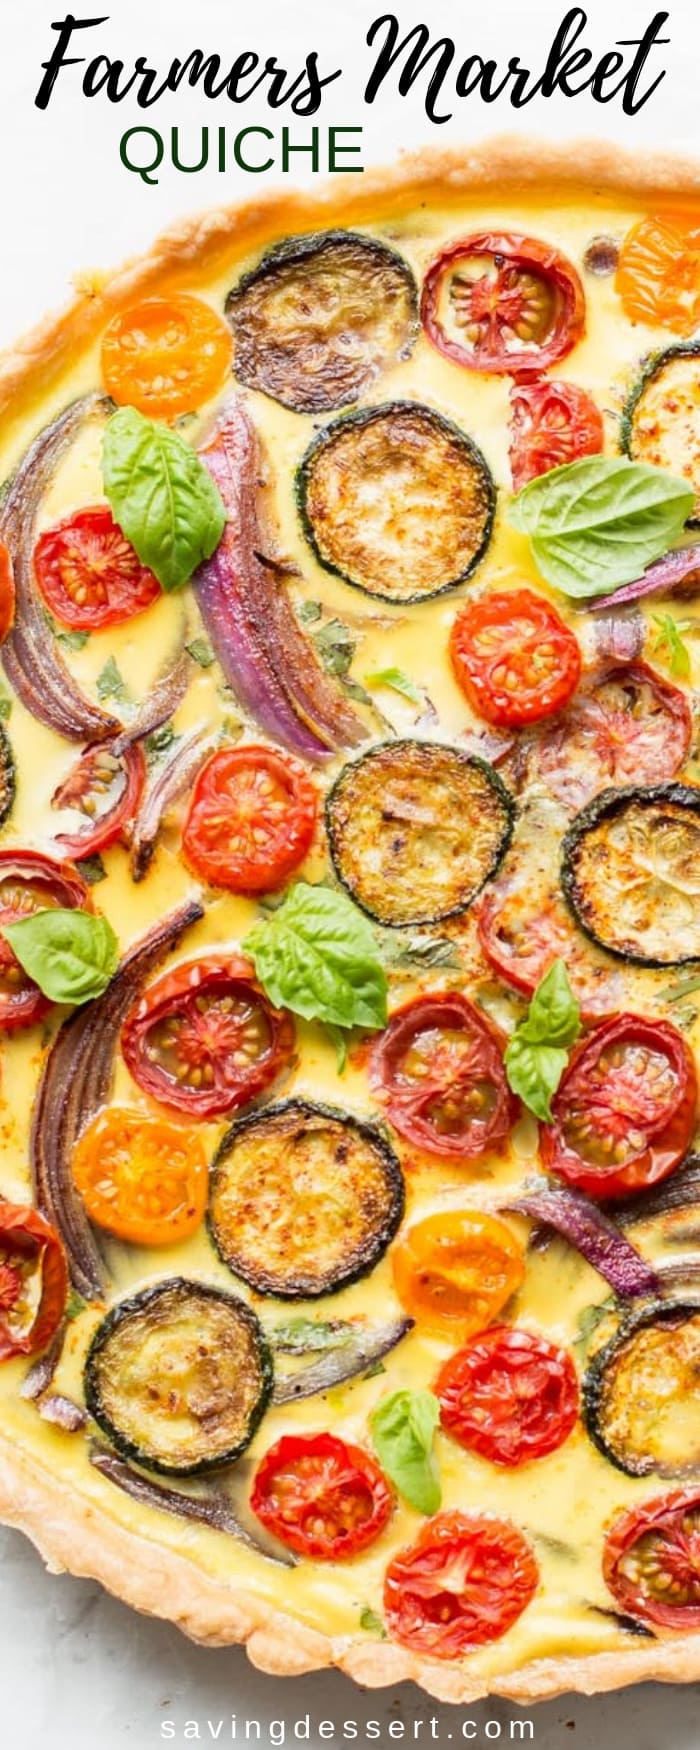 Farmers' Market Quiche - A tasty, fresh vegetable quiche filled with zucchini, onions, tomatoes and cheese. A wonderful addition to your brunch table! #savingroomfordessert #quiche #vegetablequiche #breakfast #brunch #piepastry #farmersmarketquiche